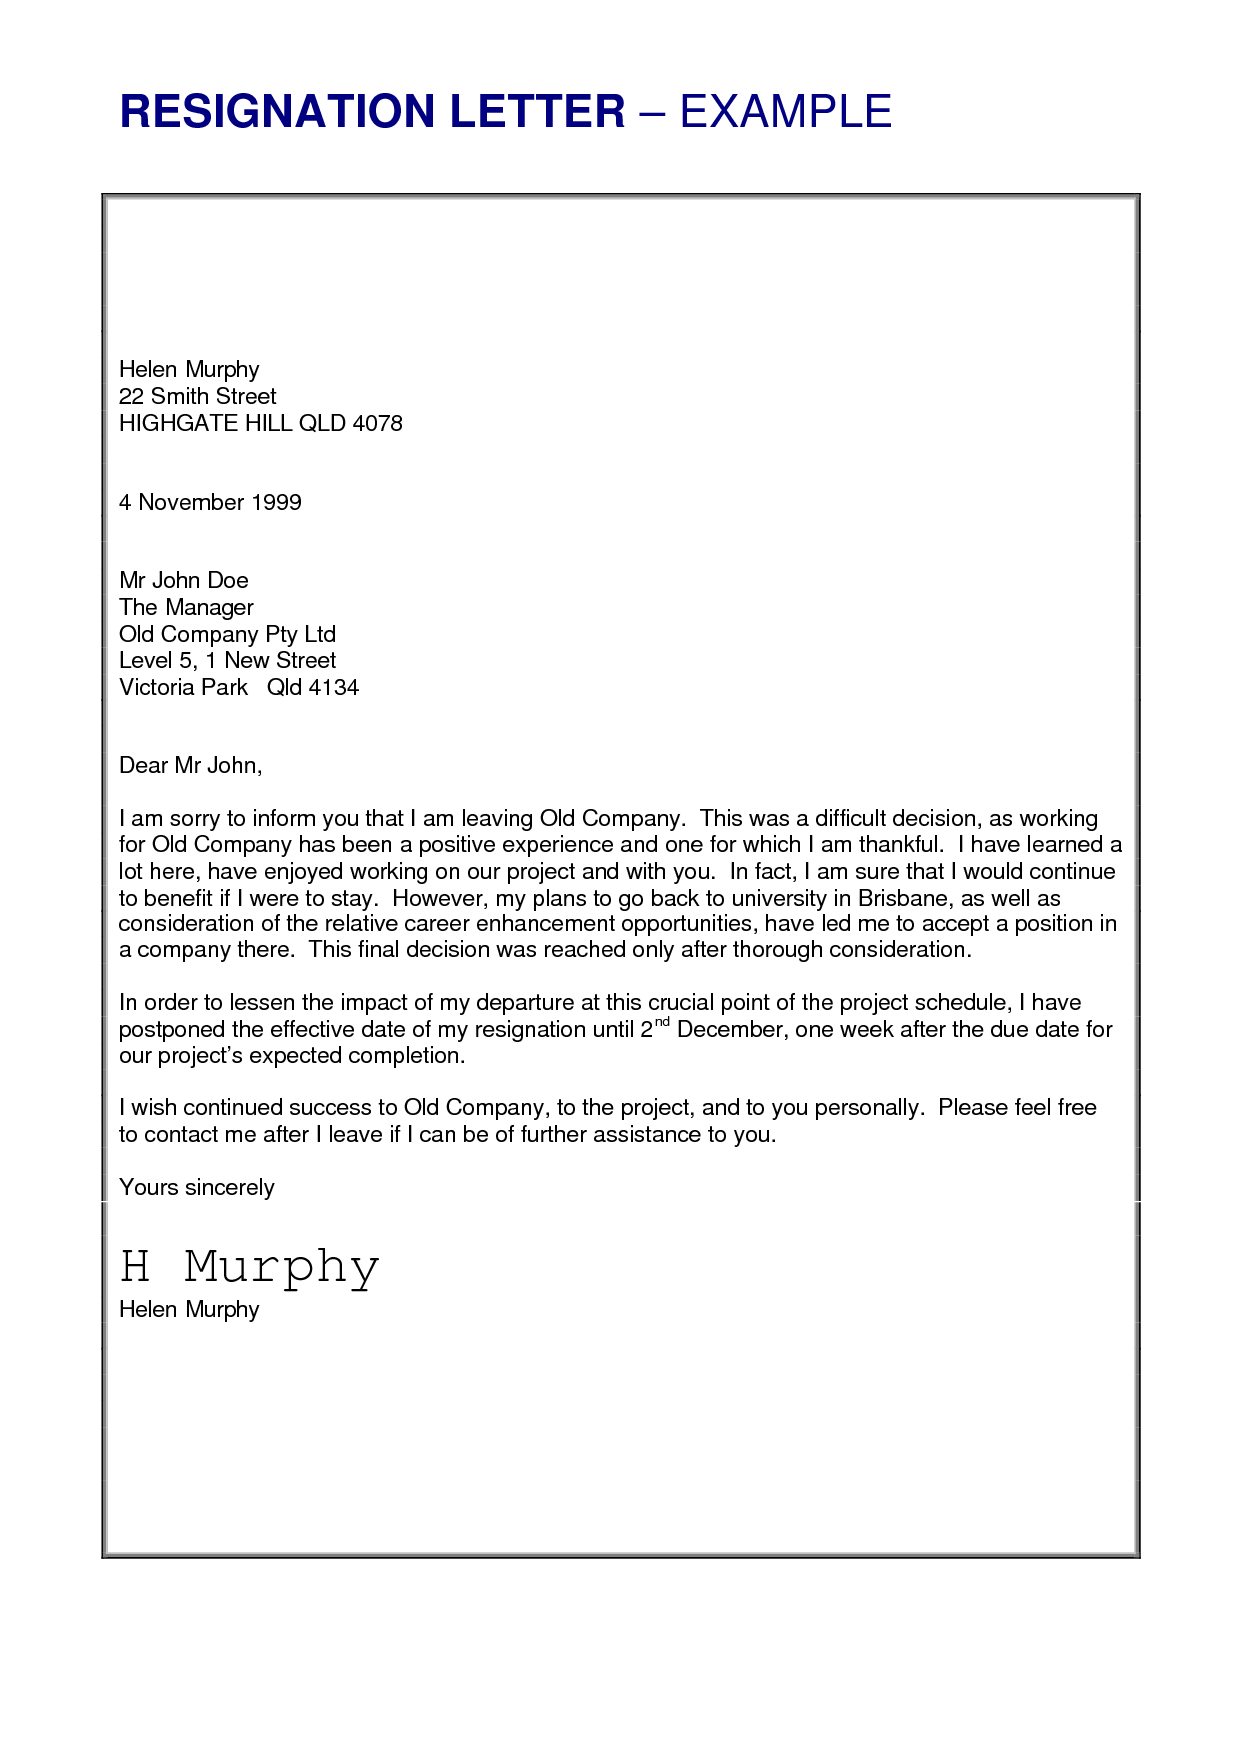 Sample Of Resignation Letter From Job Job Resignation Letter Sample Loganun Blog Best Letter Job